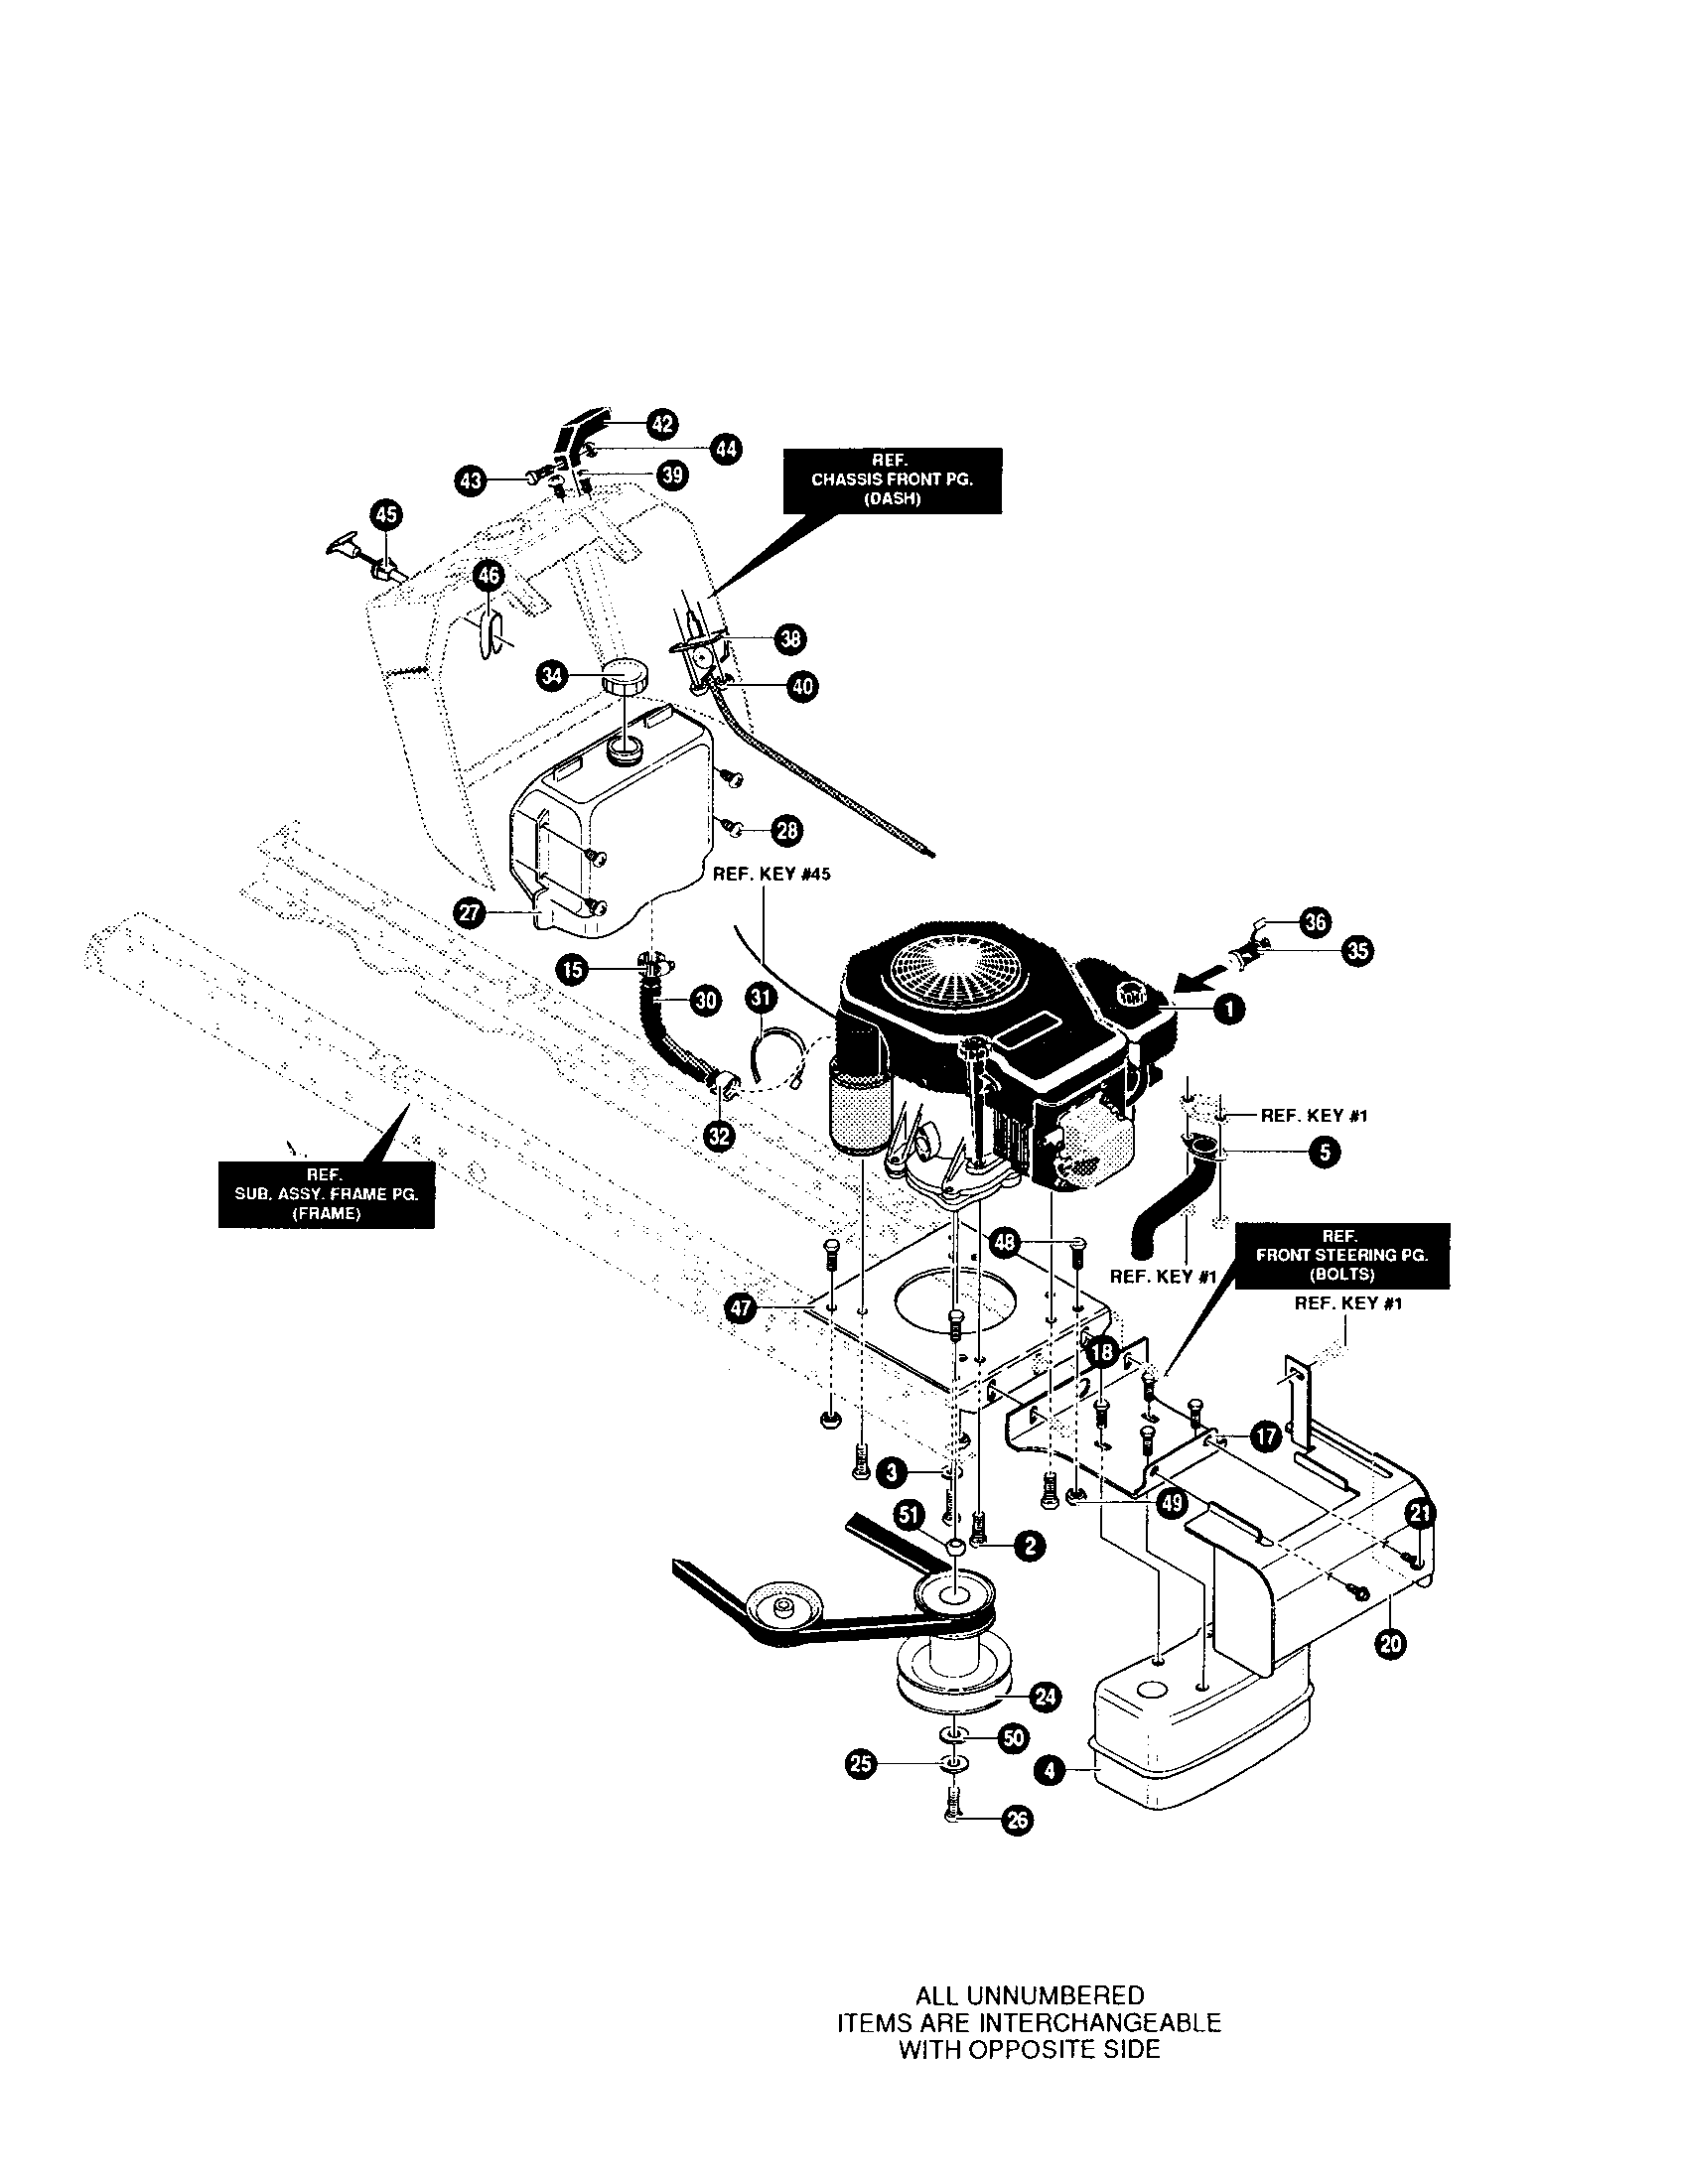 engine wiring diagram jayco trailer ignition kohler cv16s